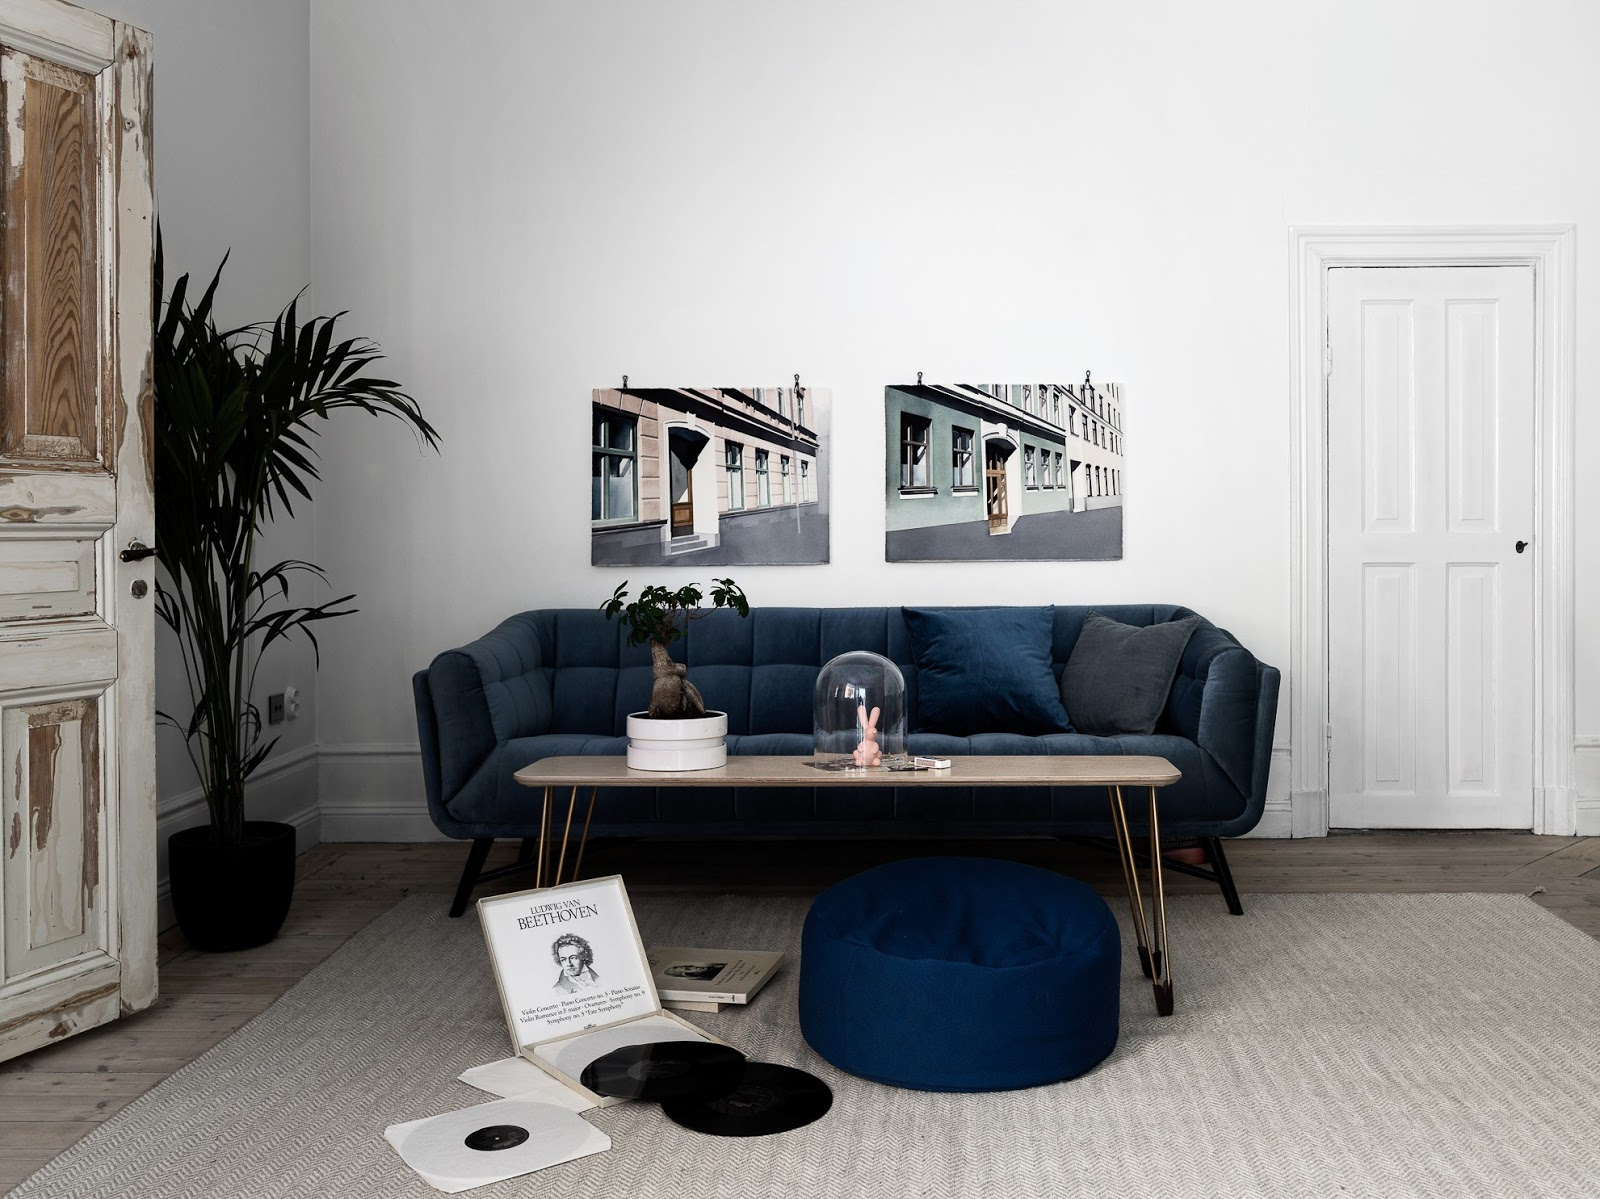 high ceilings apartment with wooden floors, white painted walls, danish design, blue sofa